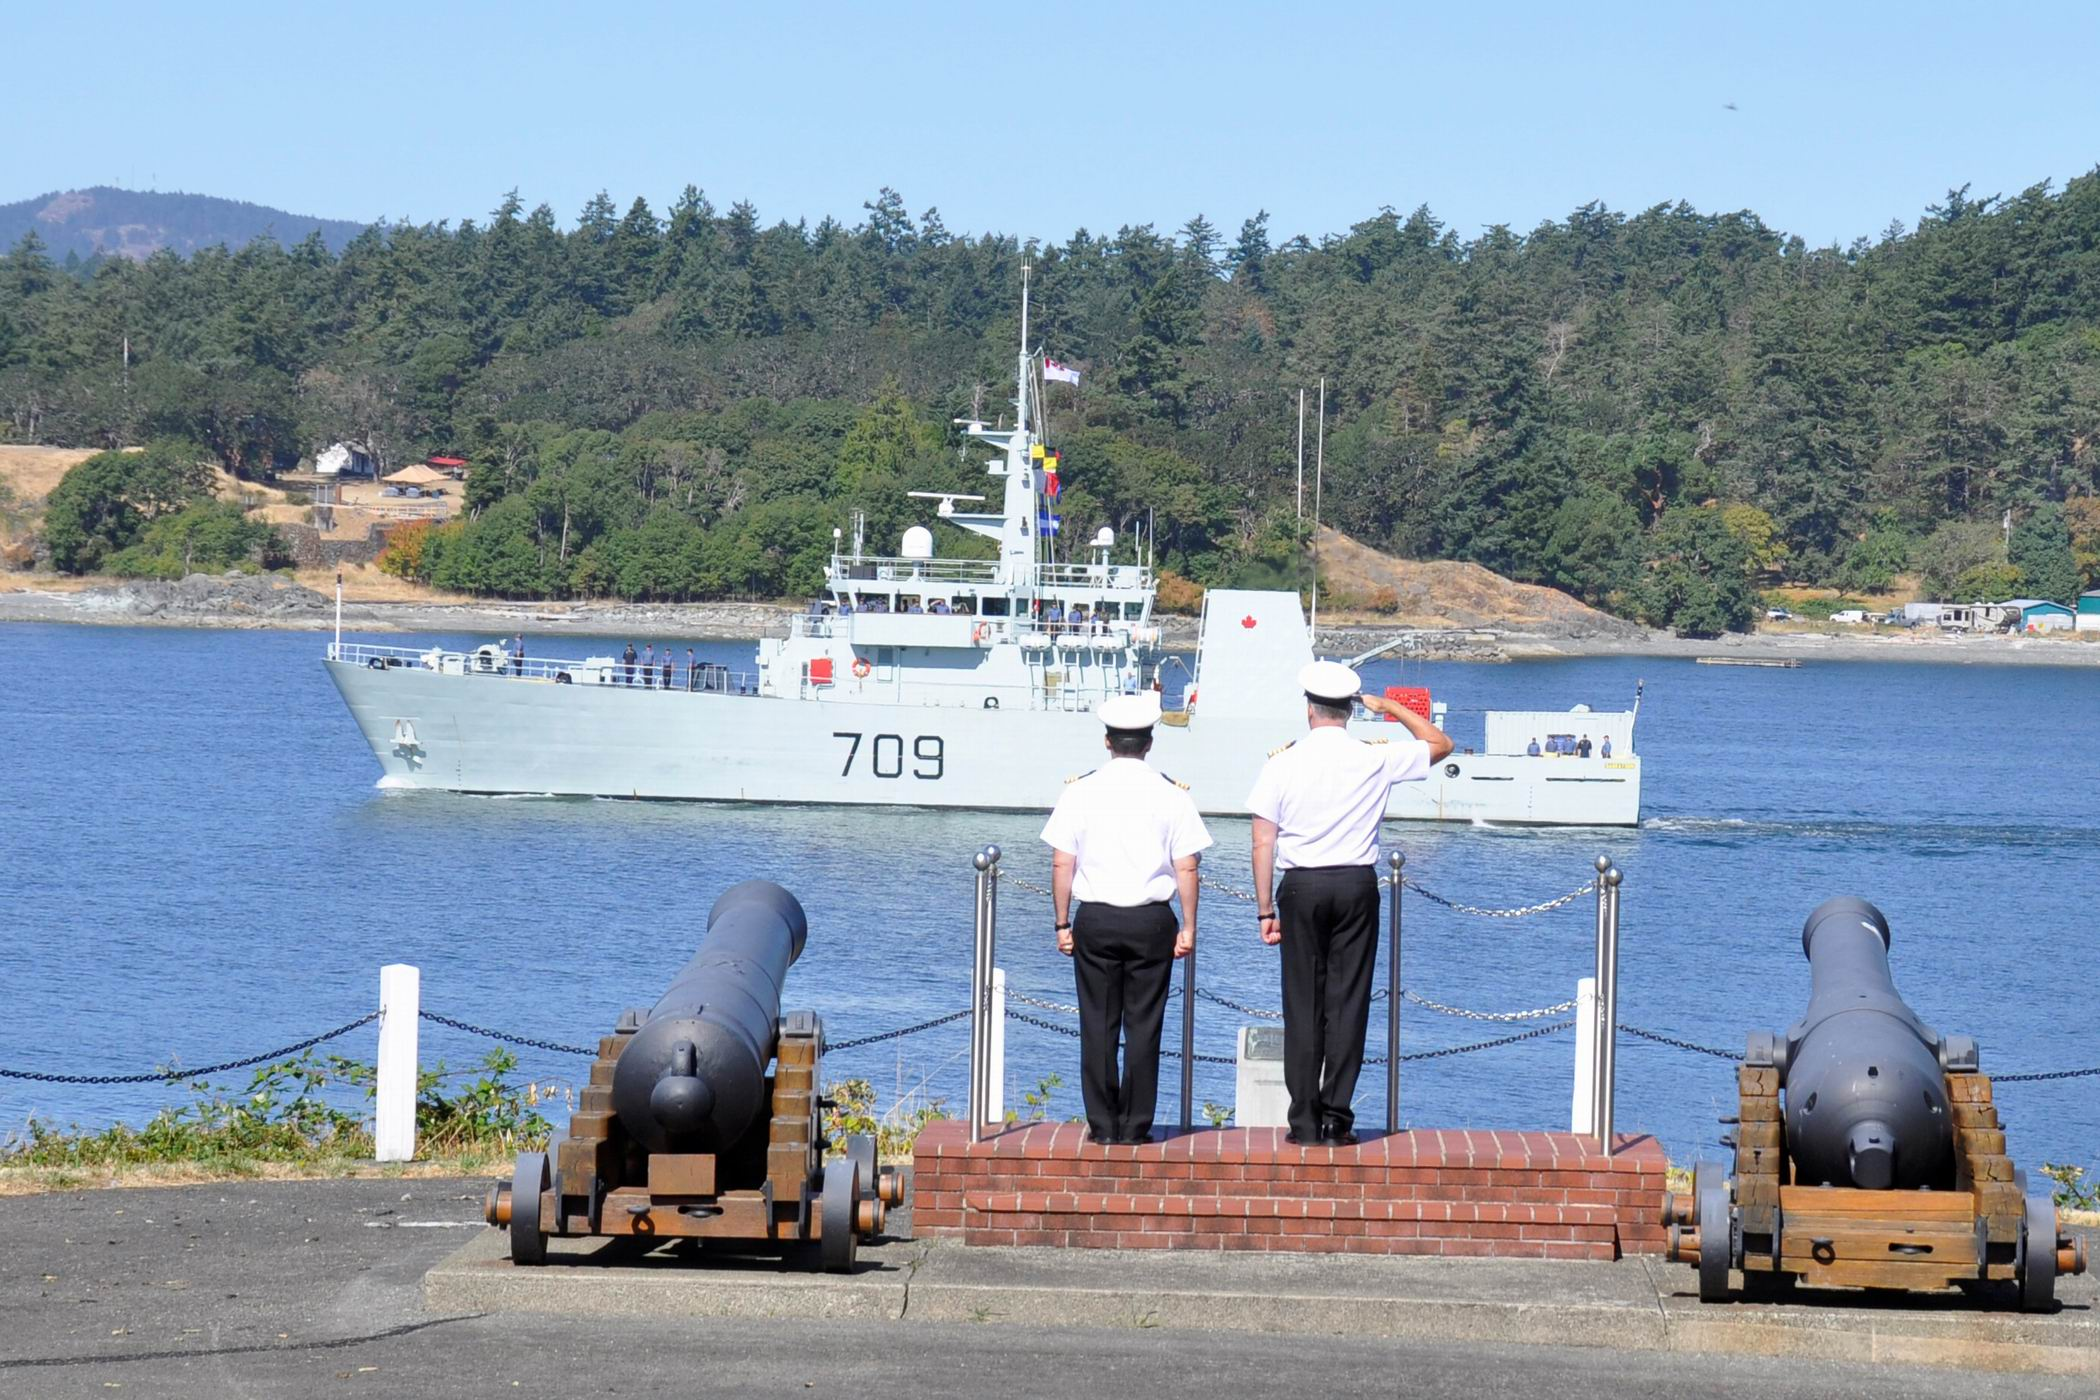 Captain (Navy) Jeff Zwick and Commander Alex Barlow bid farewell to HMCS Saskatoon